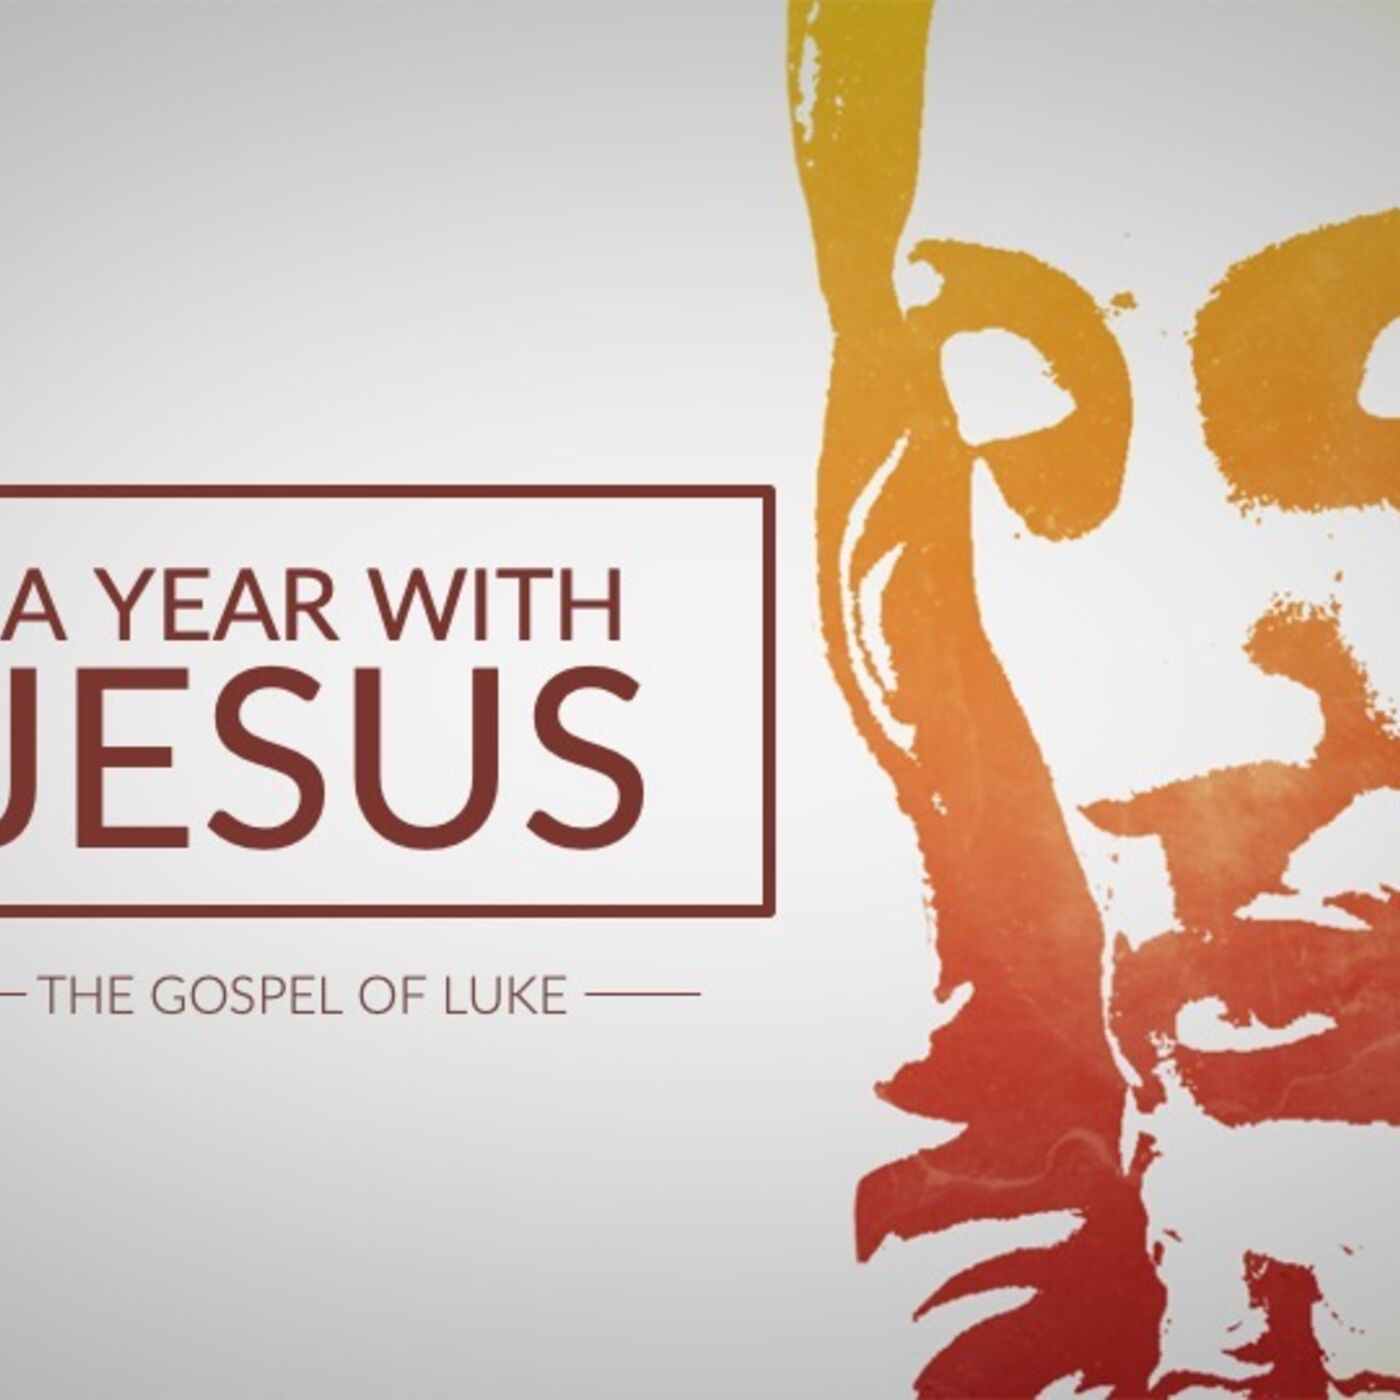 A Year With Jesus: Divided Loyalties (Luke 12:1-12)